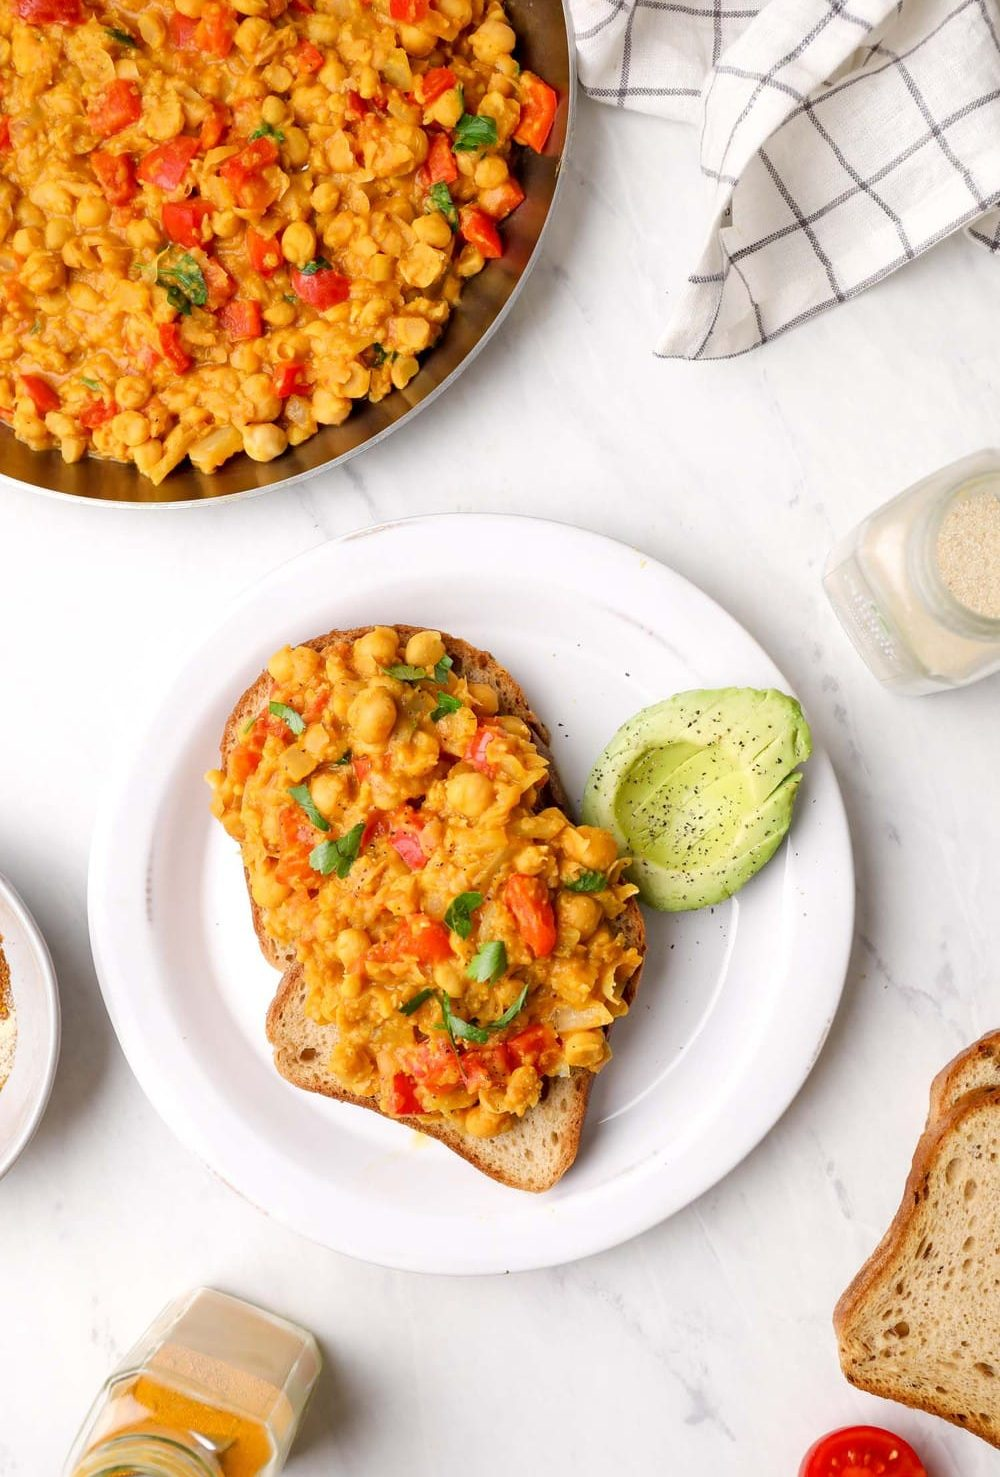 Two pieces of toast with chickpea scramble and avocado.